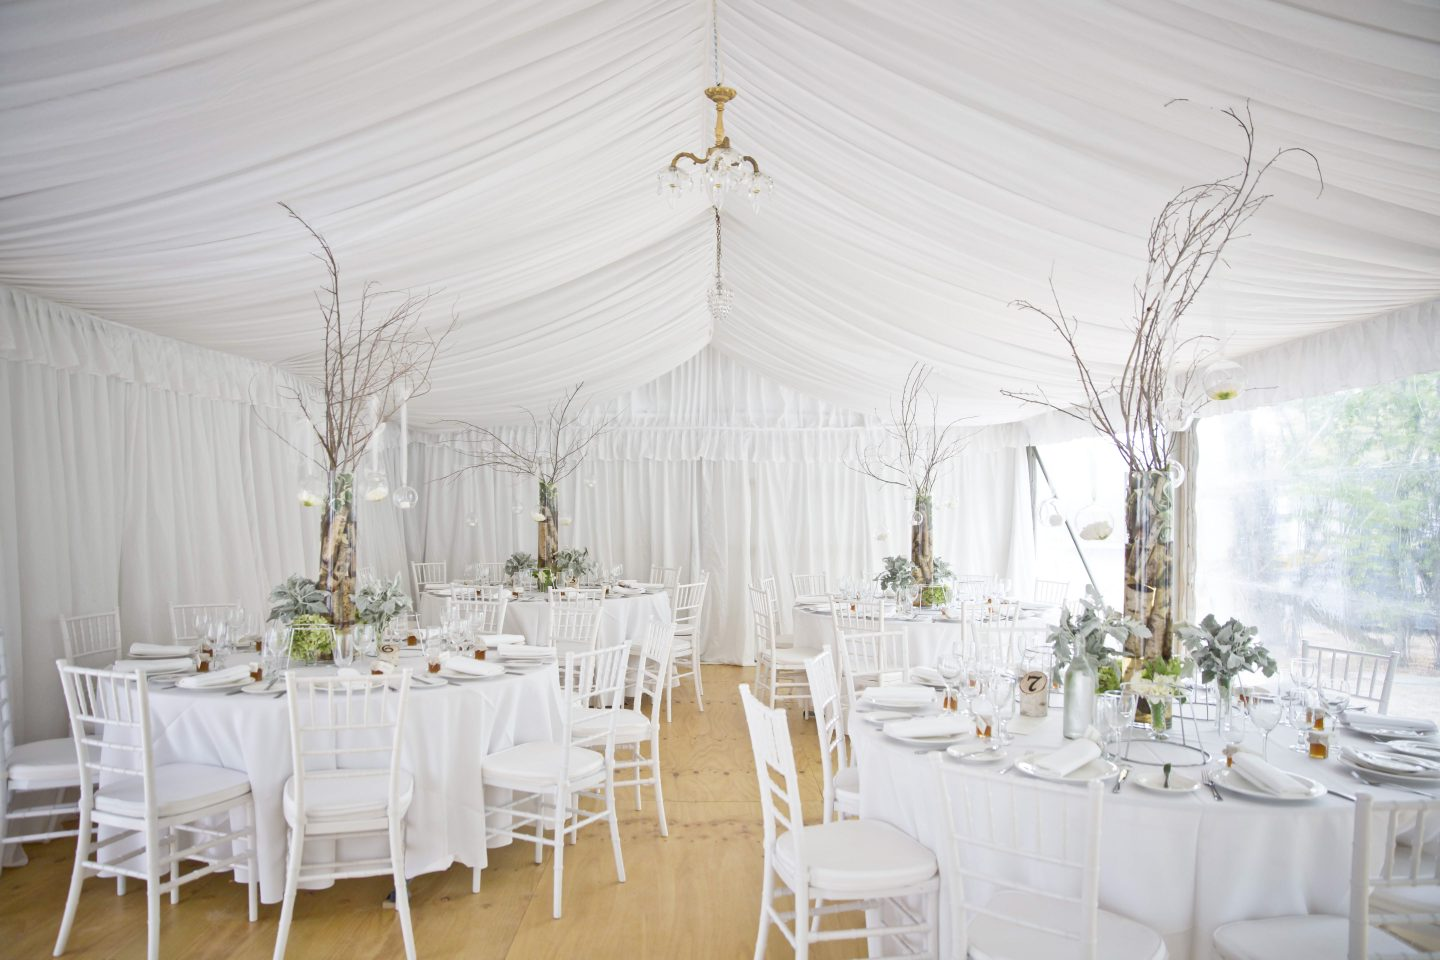 weddings-with-white-draping-and-wall-lining-round-tables-and-chiavari-chairs